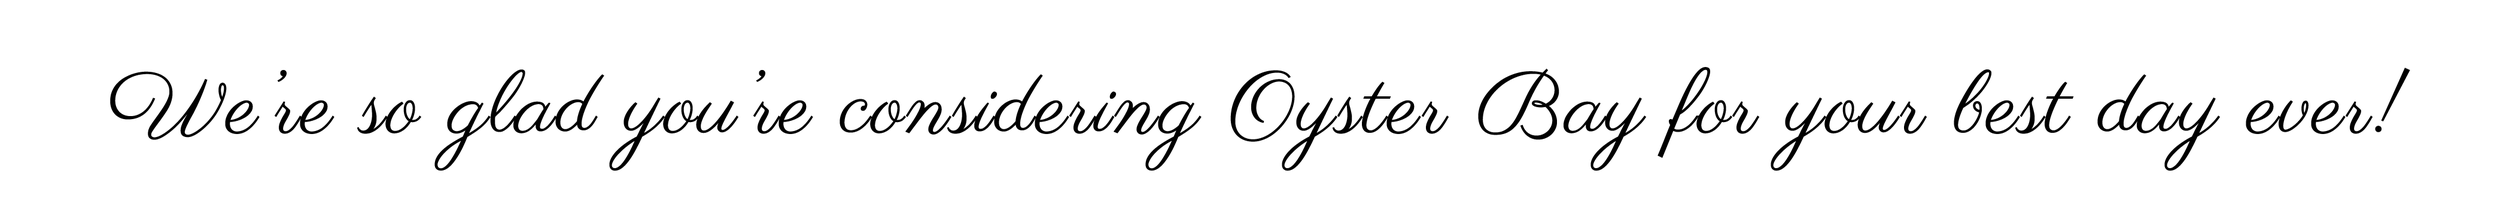 OBYC banner-01.png